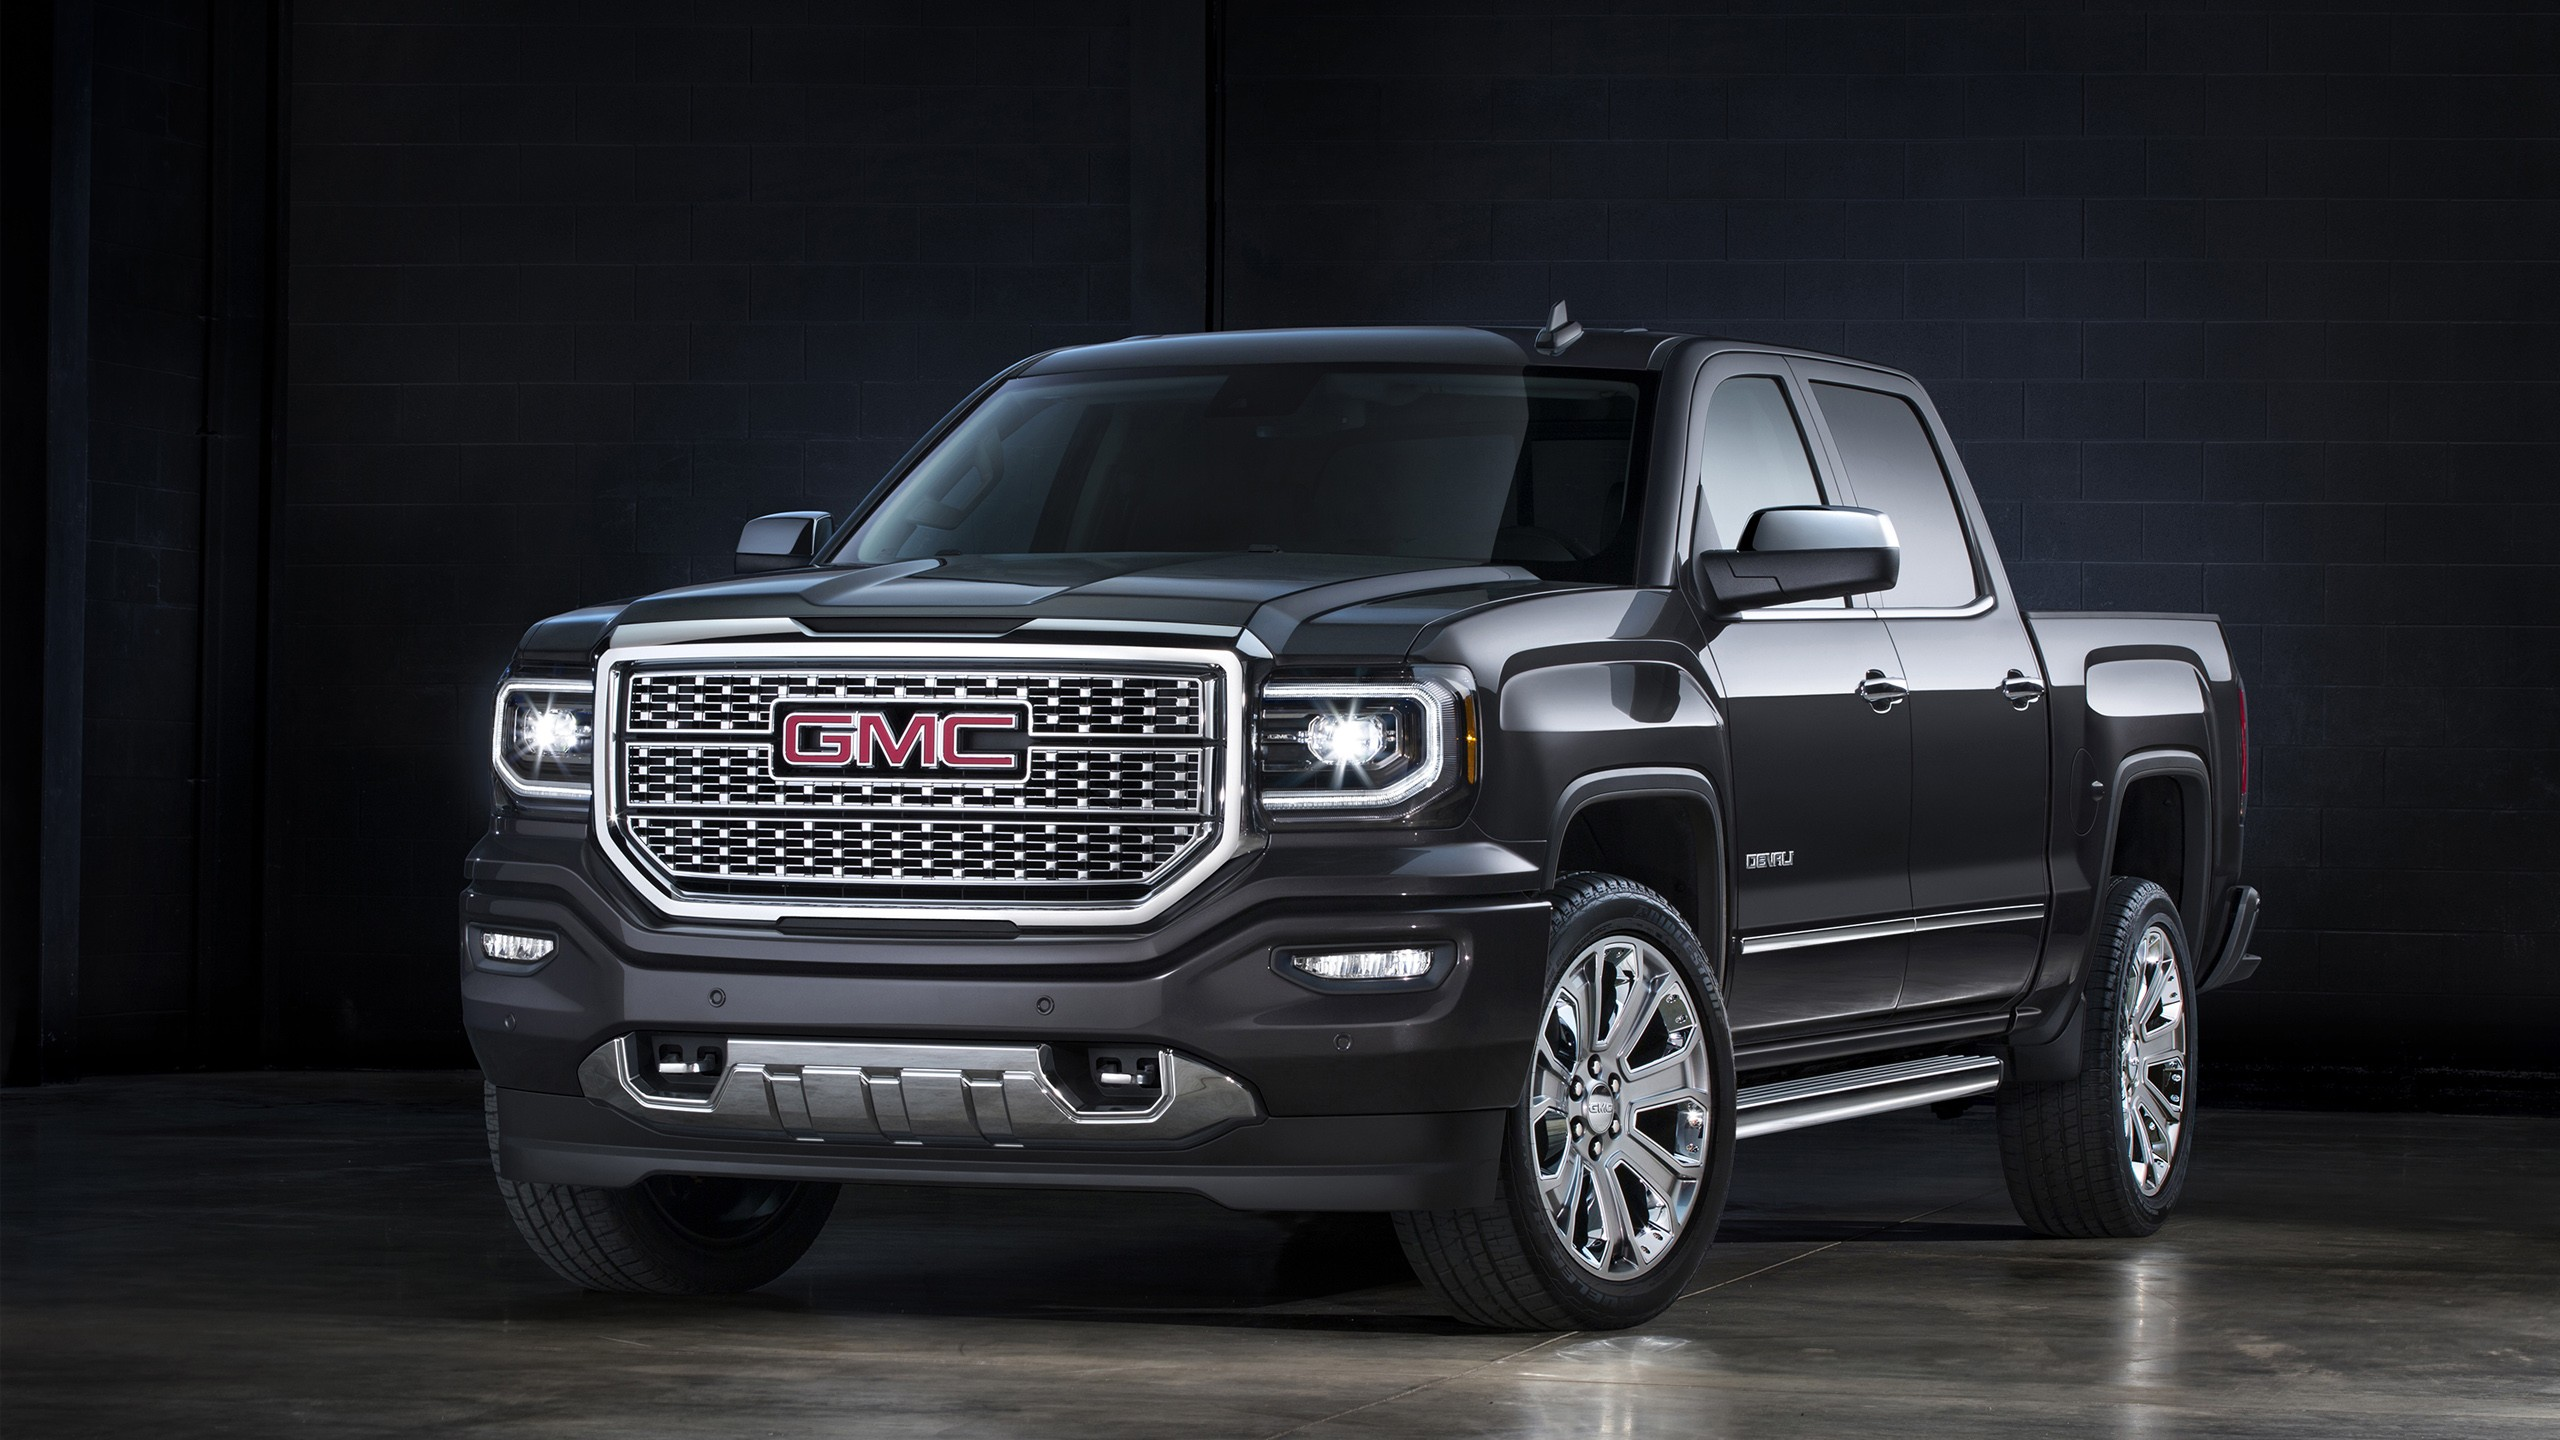 2016 GMC Sierra Denali Wallpaper | HD Car Wallpapers | ID ...